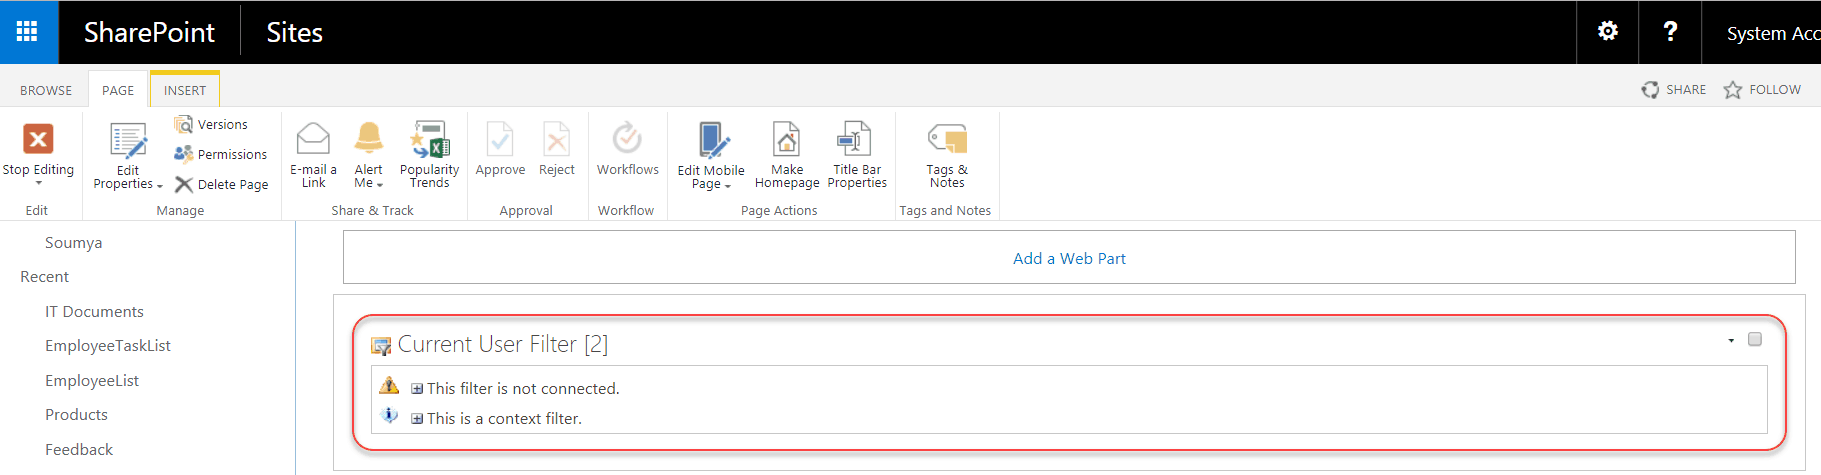 filter web part sharepoint 2013 missing